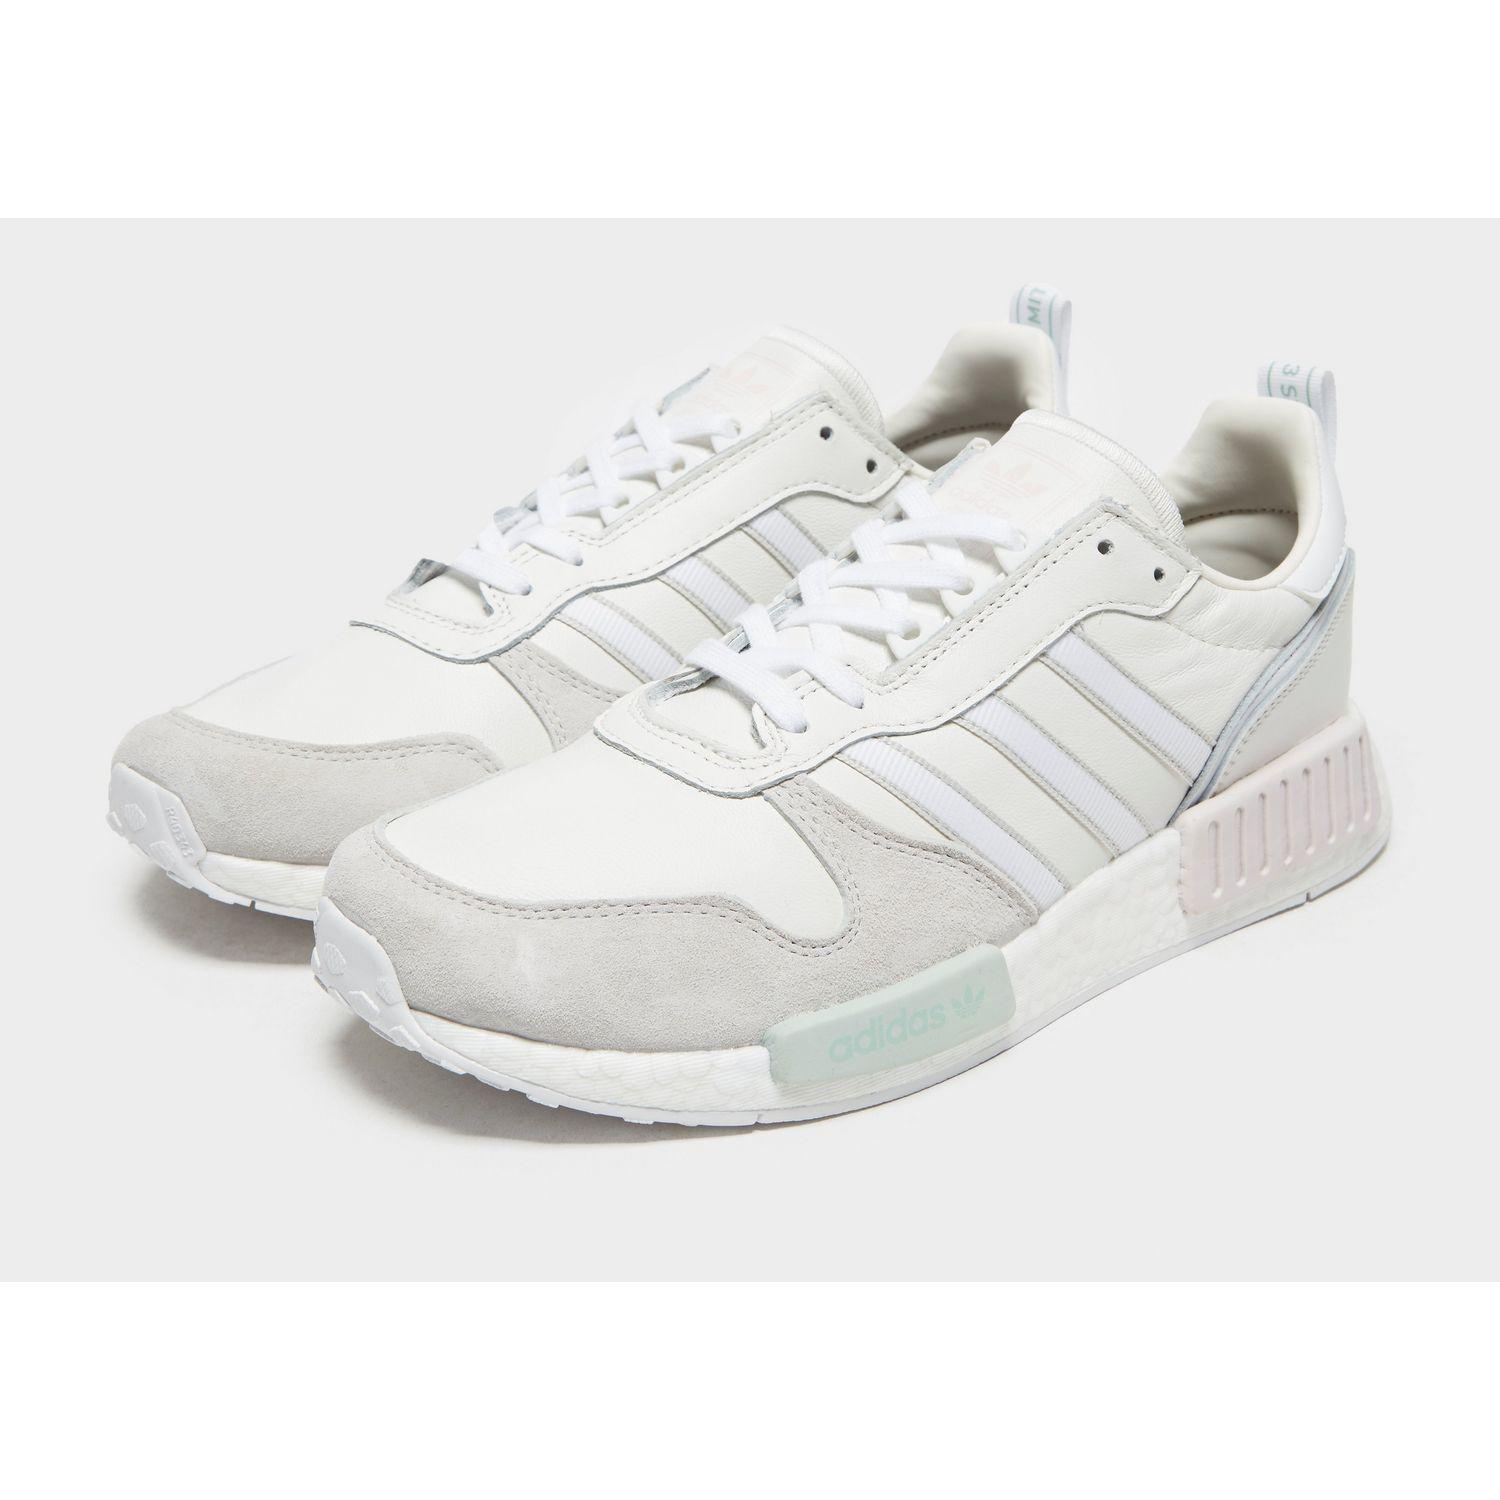 d29ab005eabe7 Lyst - adidas Originals Rising Star Xr1 in White for Men